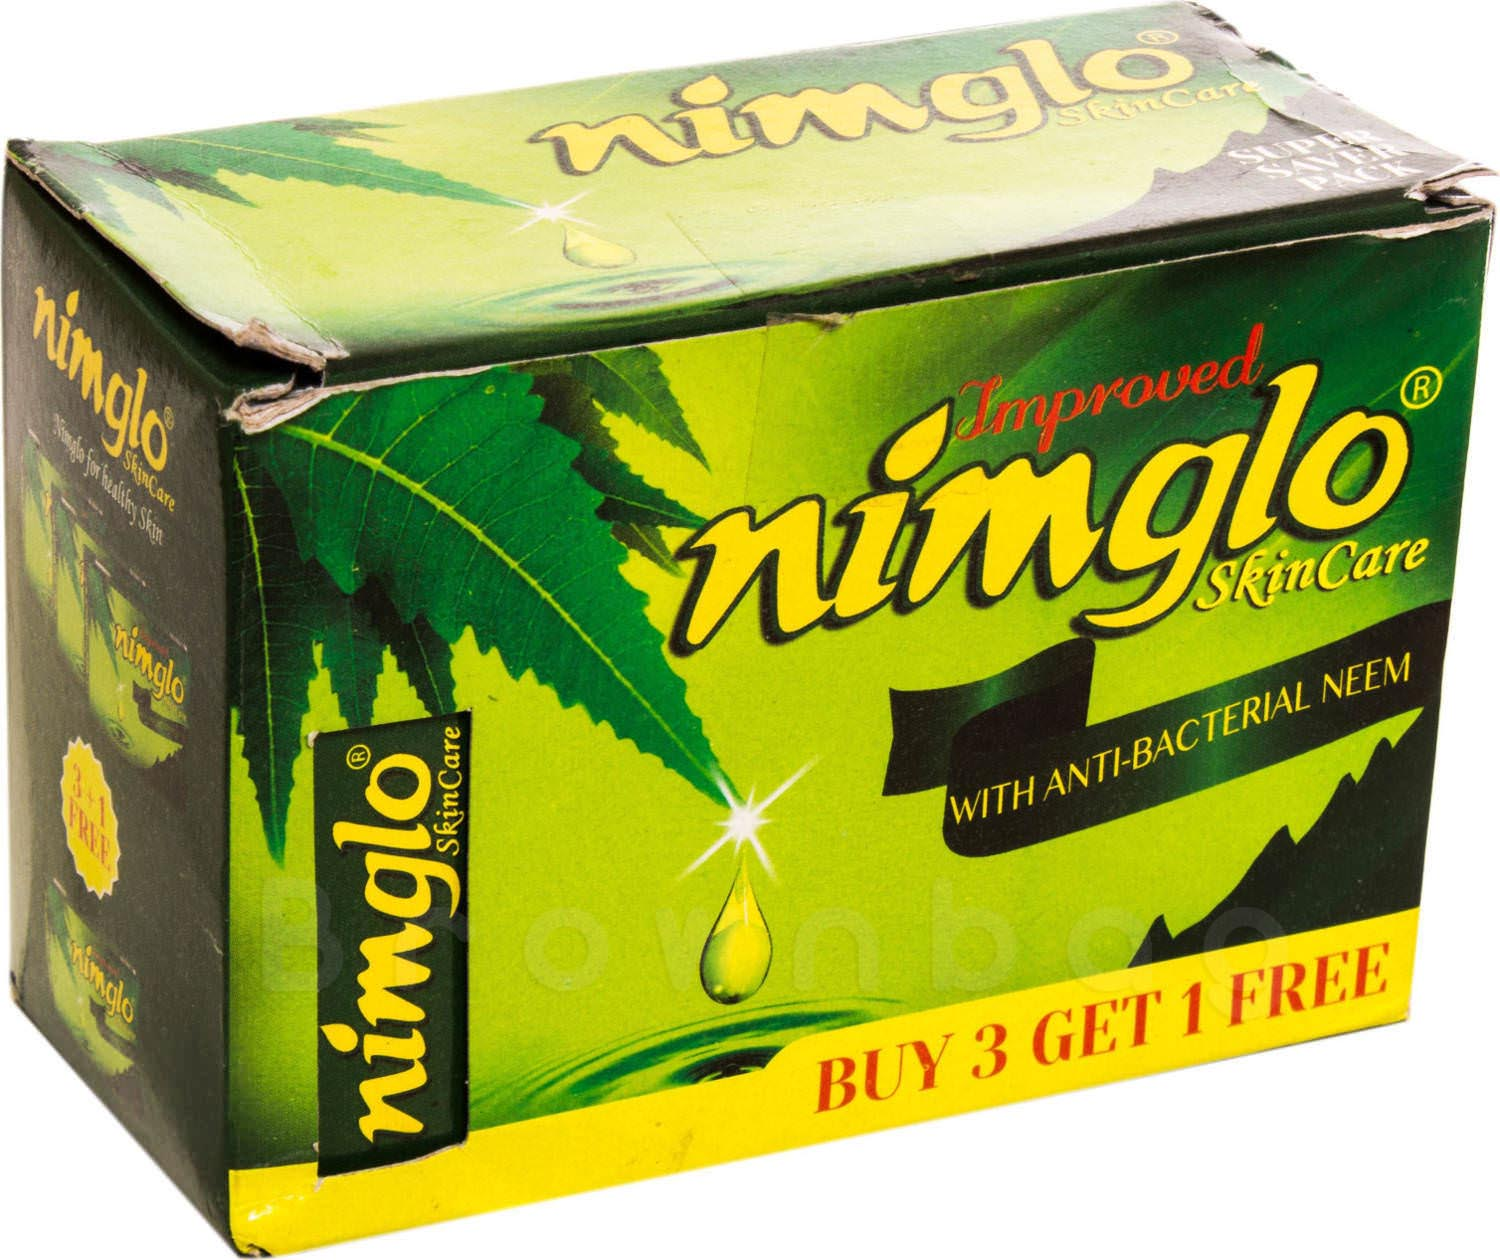 Nimglo Skin Care Body Soap with Anti-Bacterial Neem (Buy 3 Get 1 Free)